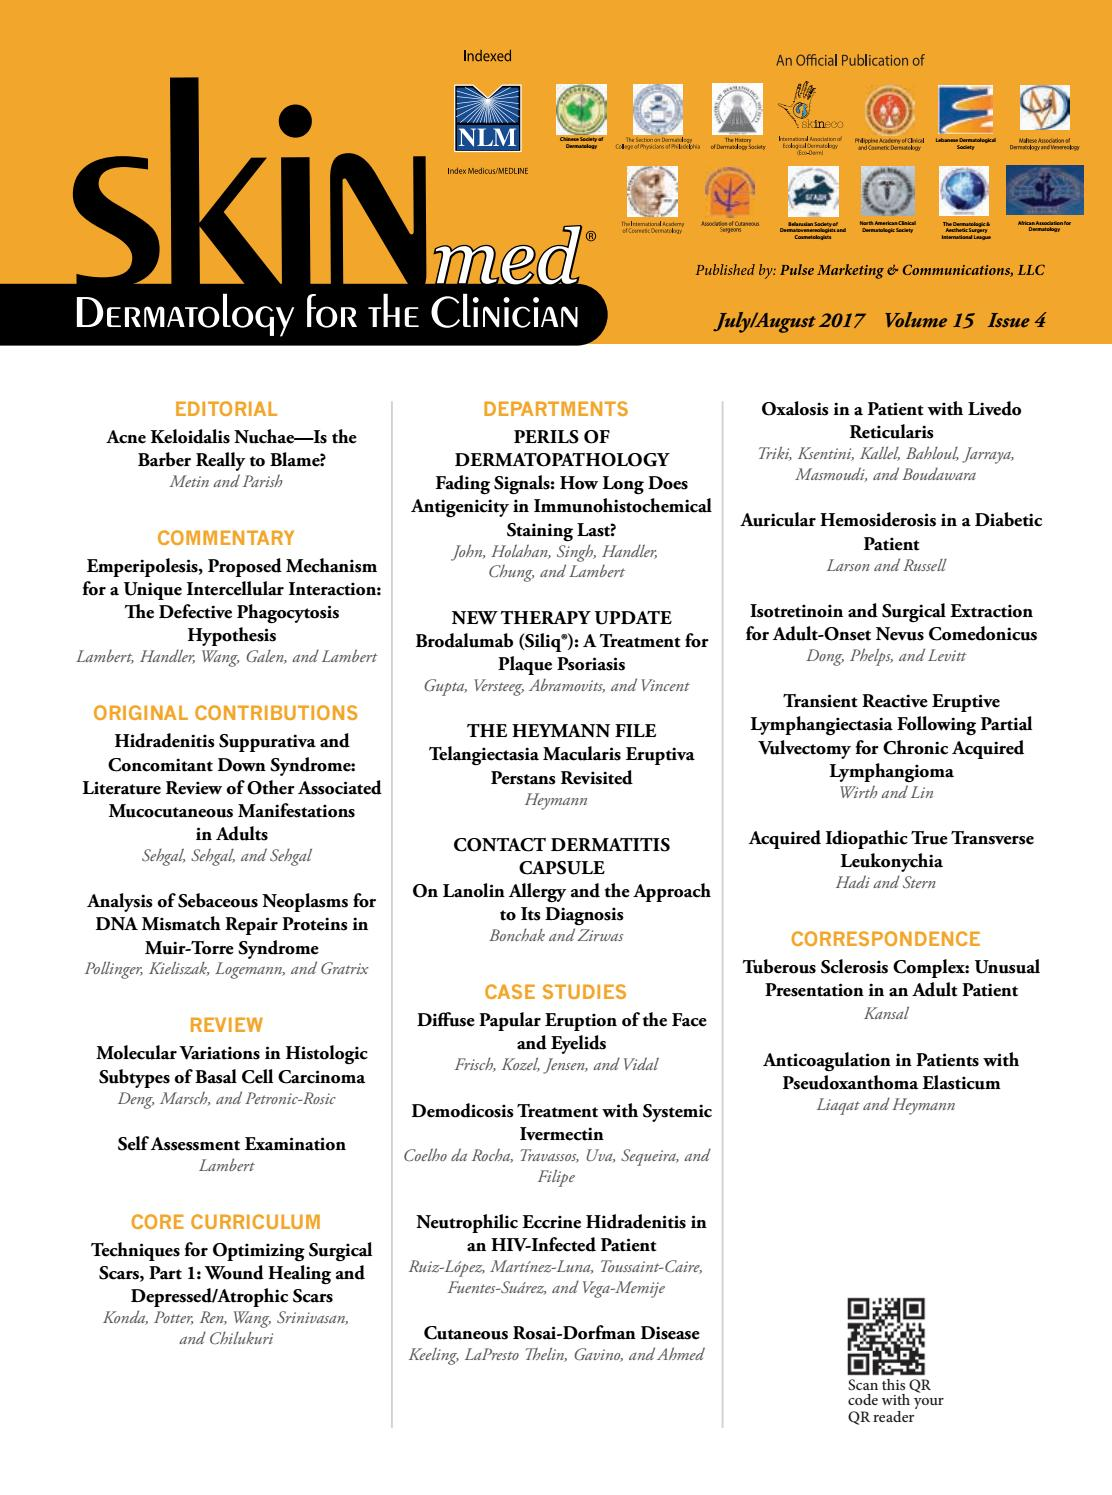 Skinmed v15i3 l - July/August 2017 by jo-ann kalaka-Adams - issuu